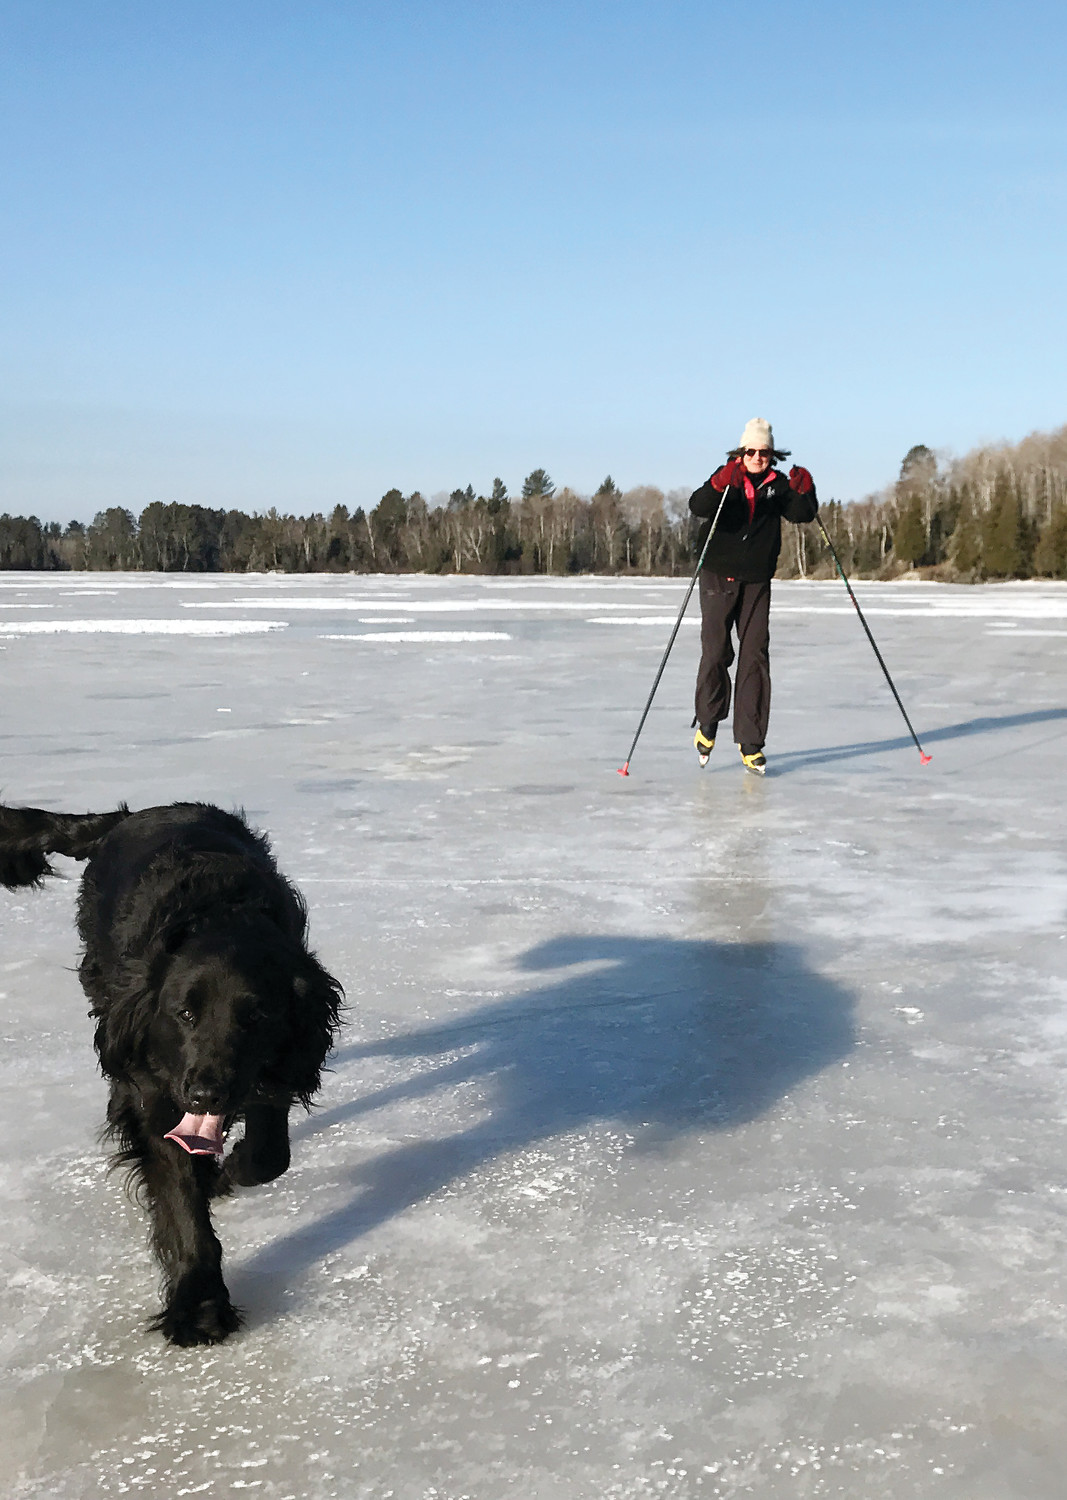 Mary Shedd, of Tower, uses Nordic skates on late season ice last April. Her dog, Ruckus, managed without skates.